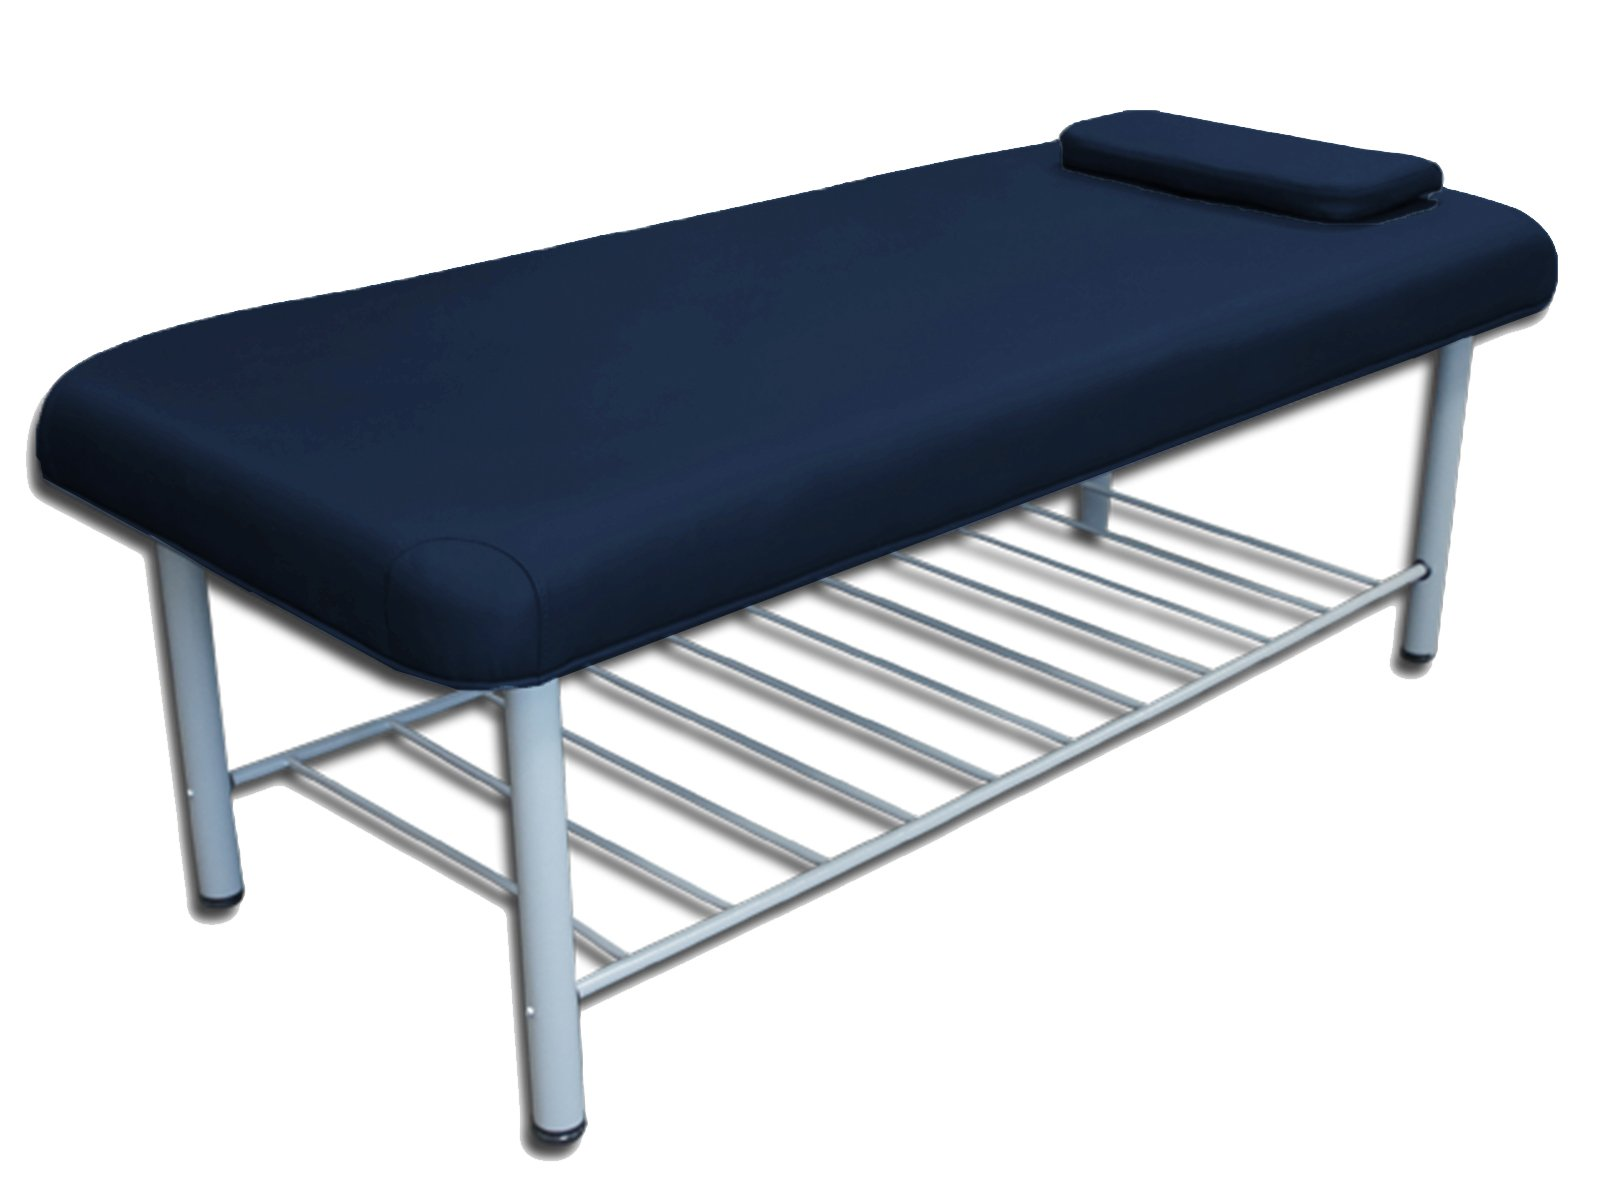 TOA Professional Metal Framed Stationary Spa Massage Table Bed w/ Tray Rack (1 Blue Table) by TOA Supply (Image #1)